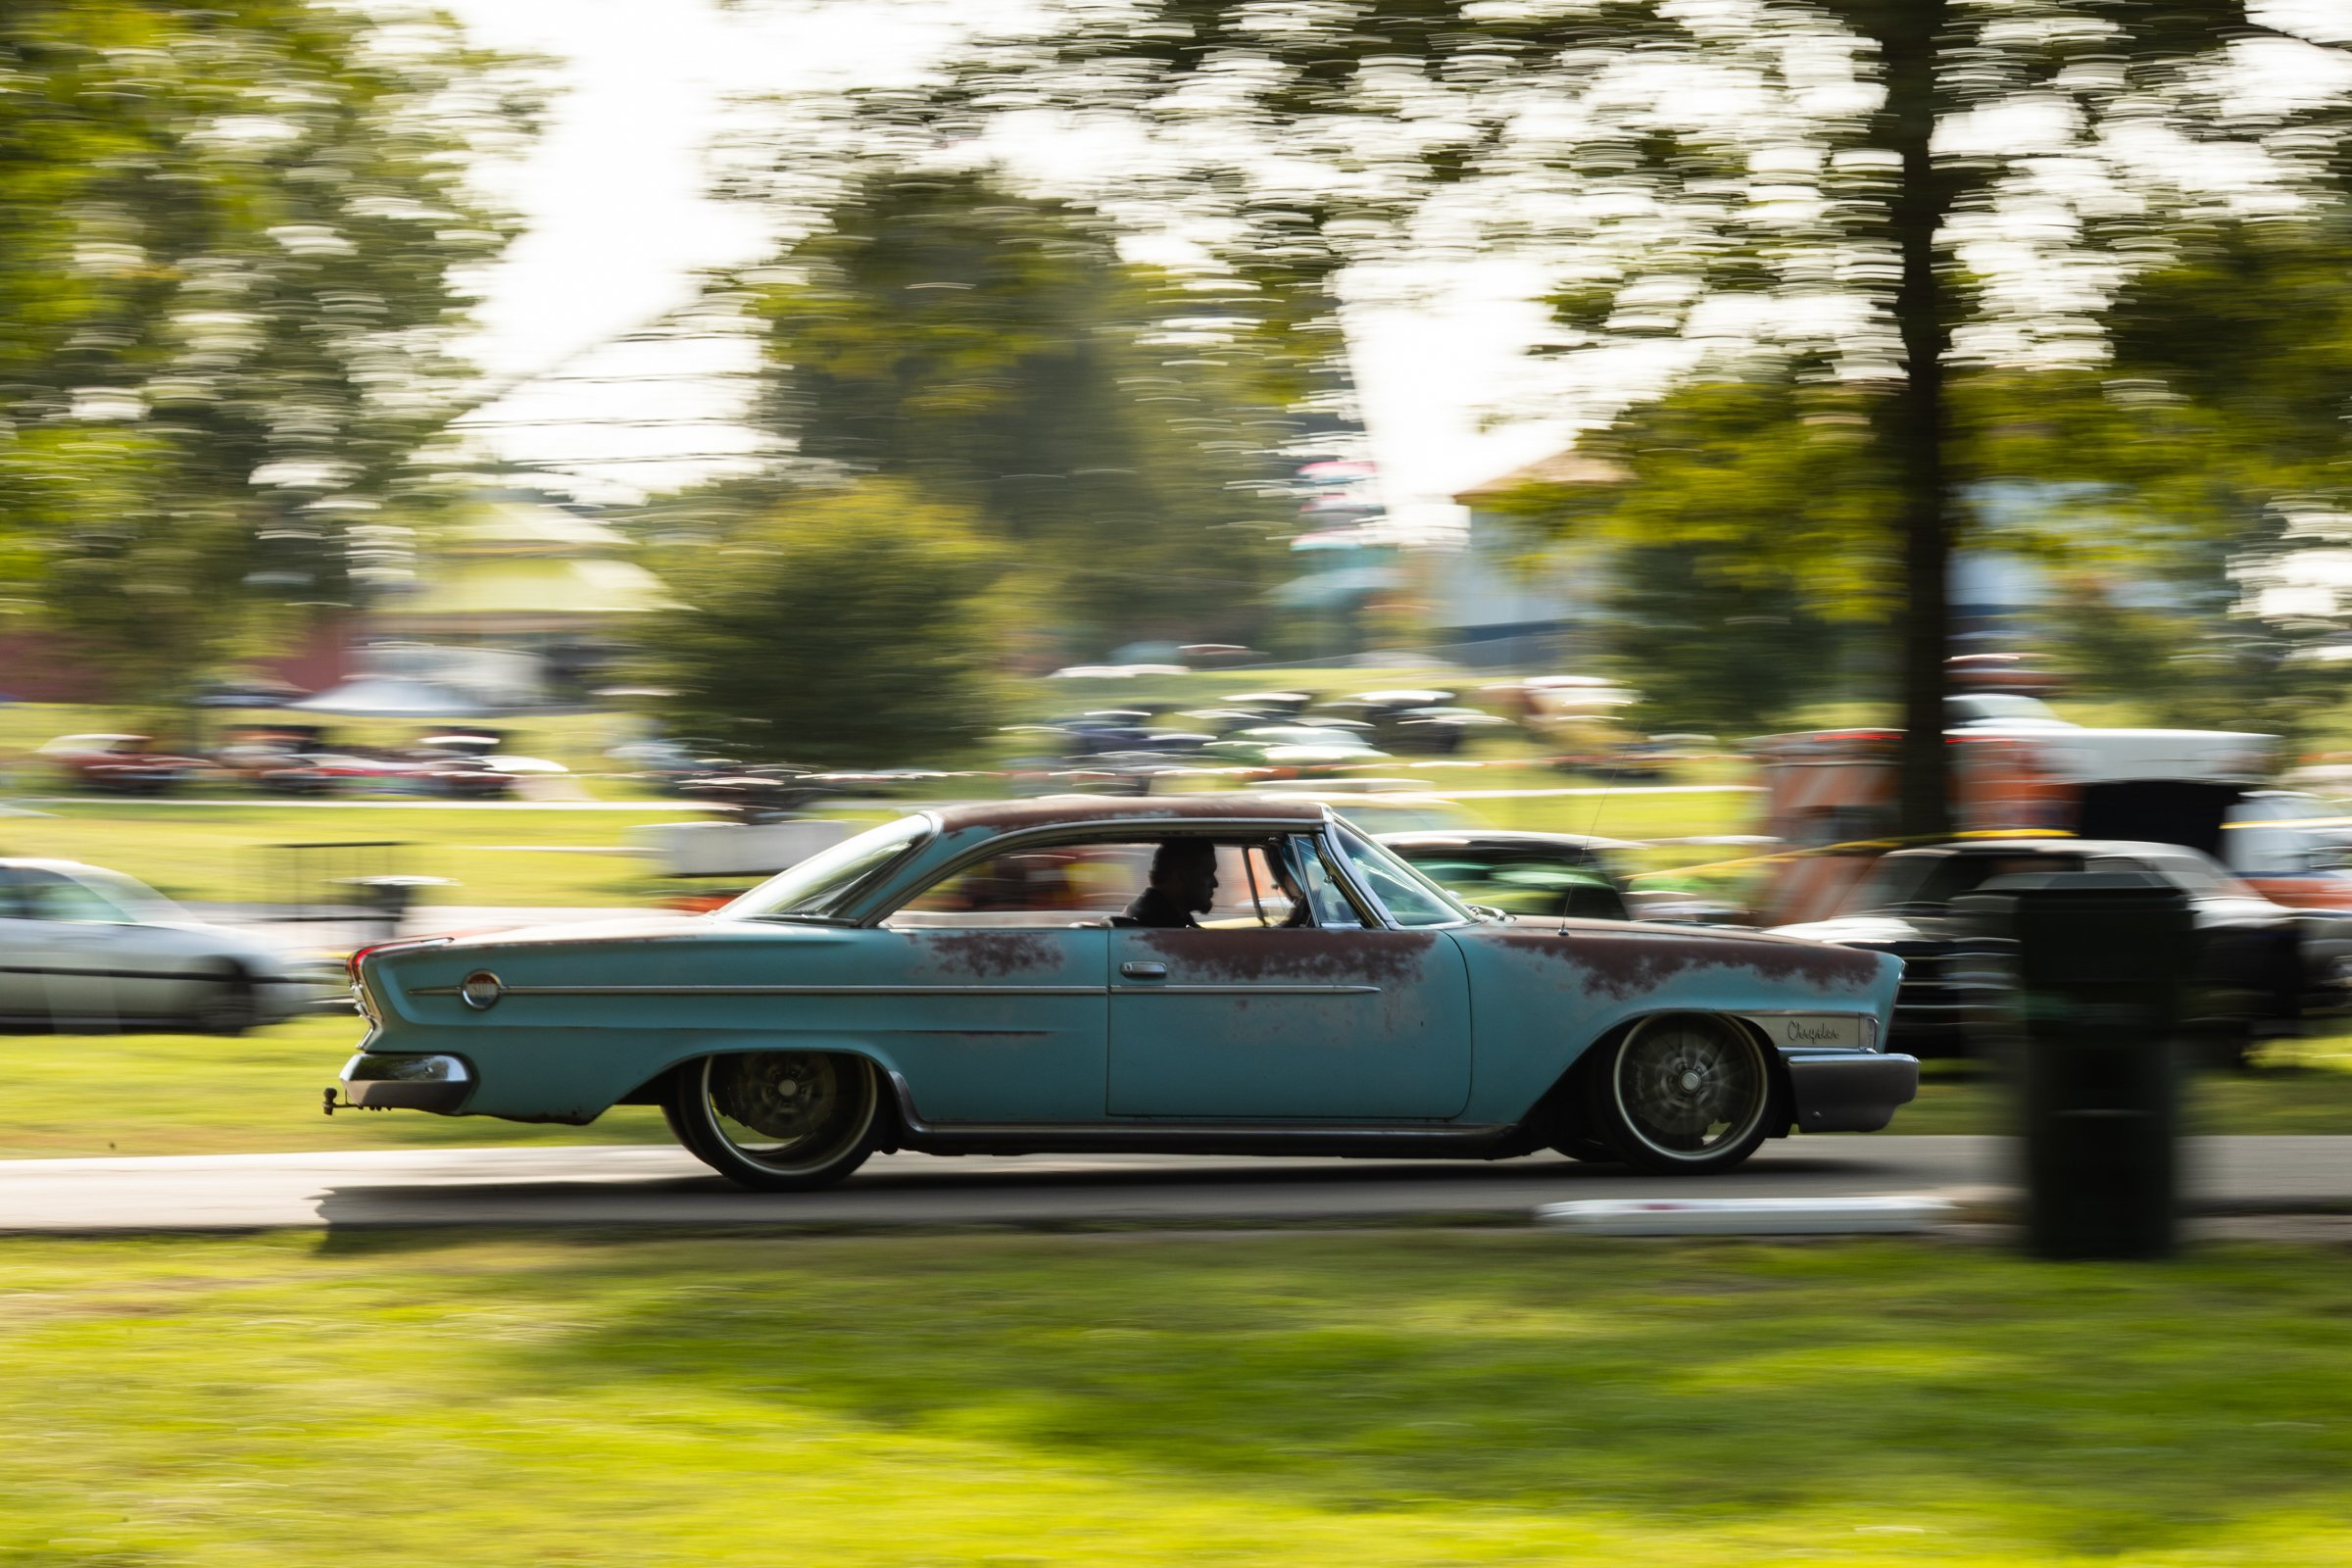 1962 Chrysler 300 driving at Beech Bend Raceway